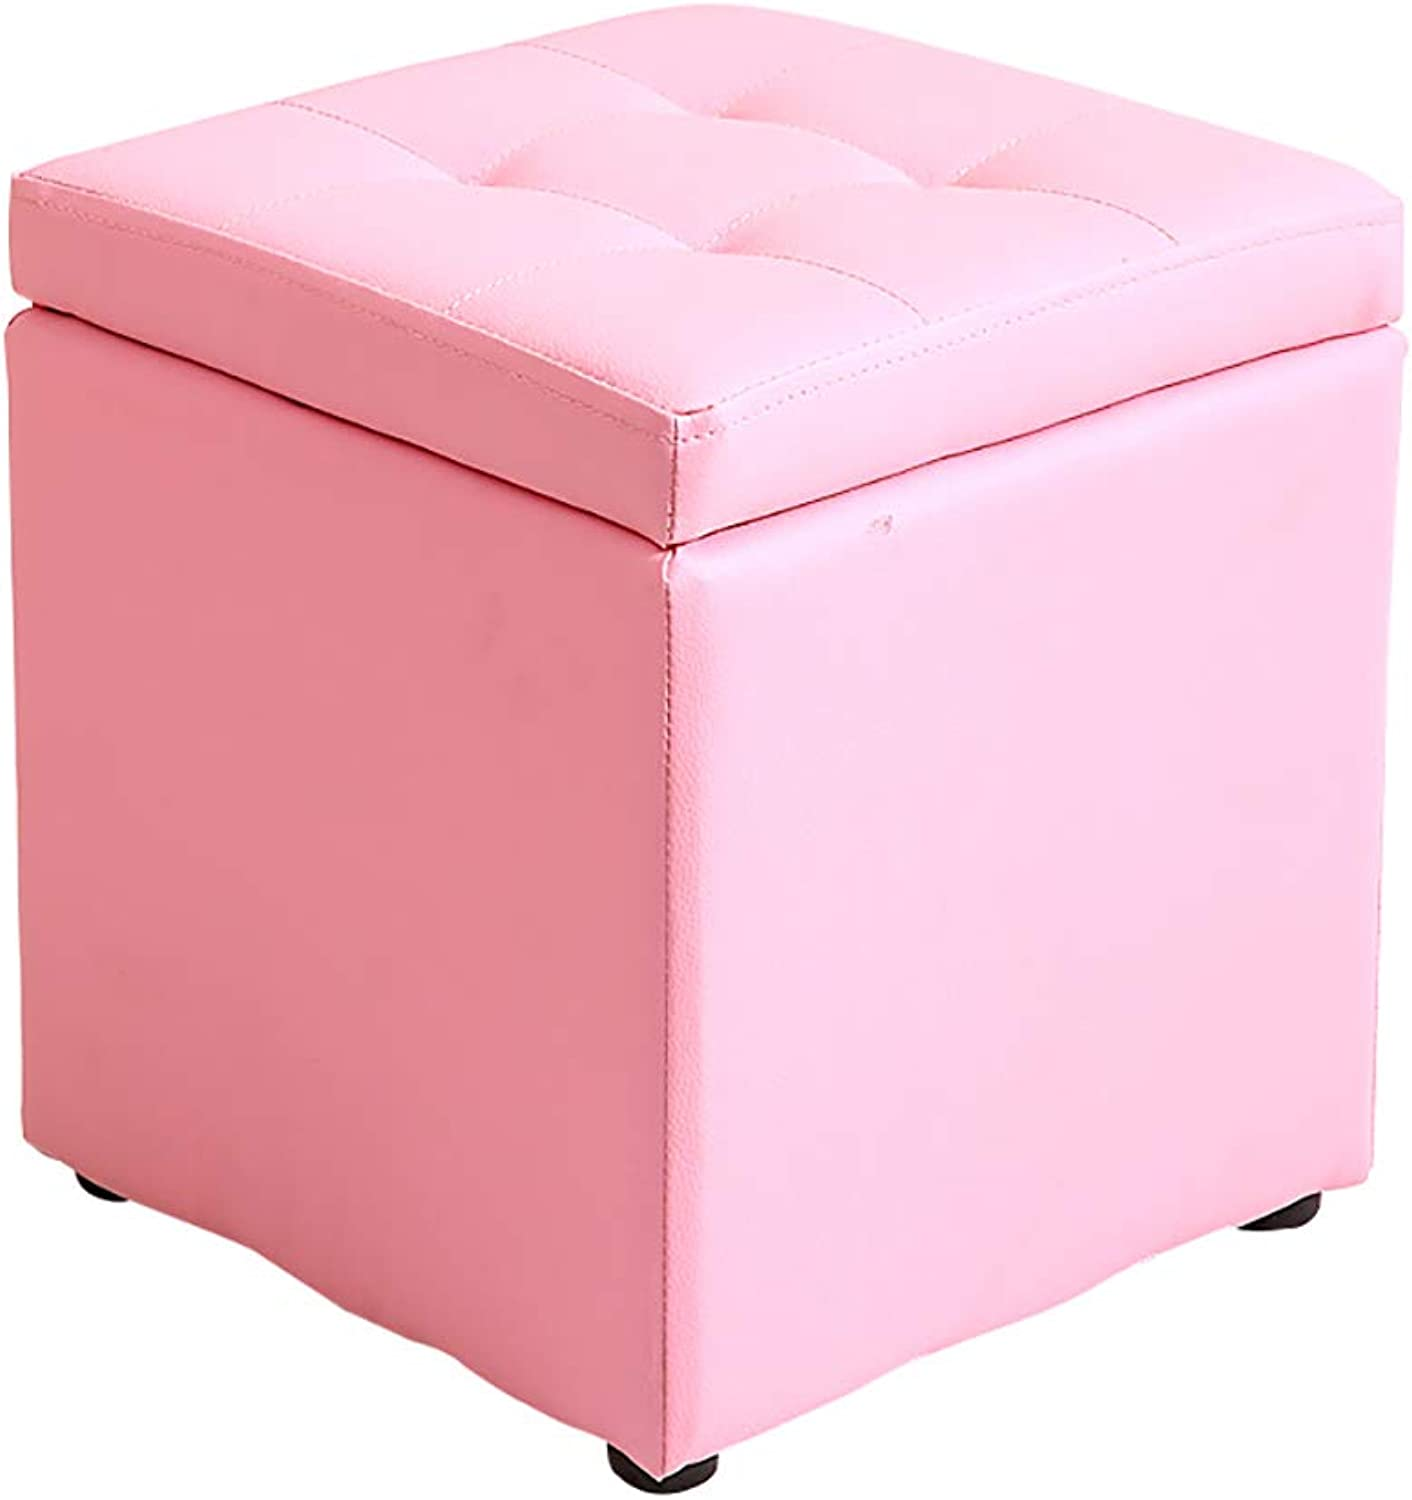 Footstool shoes Bench Sofa Stool Solid Wood Artificial Leather Breathable Storage Non-Slip Weight Bearing Strong 30  30  35cm (5 colors) (color   Pink)